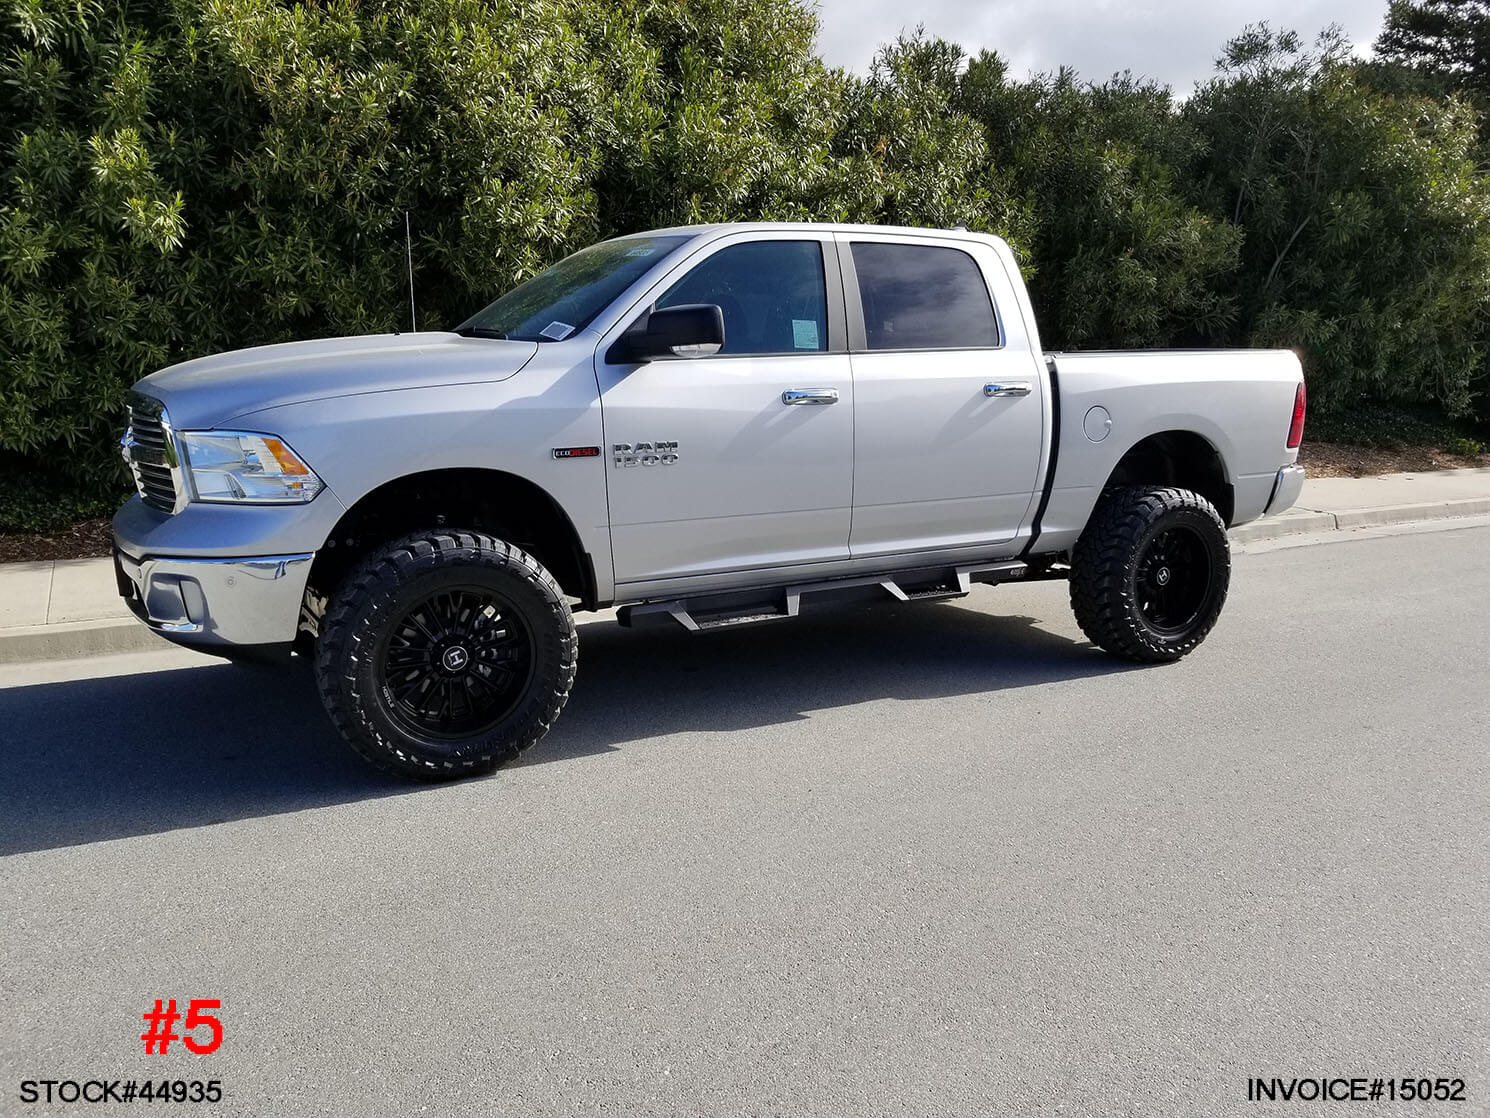 F150 Custom Parts >> 2017 DODGE RAM 1500 CREW CAB #44935 | Truck and SUV Parts Warehouse